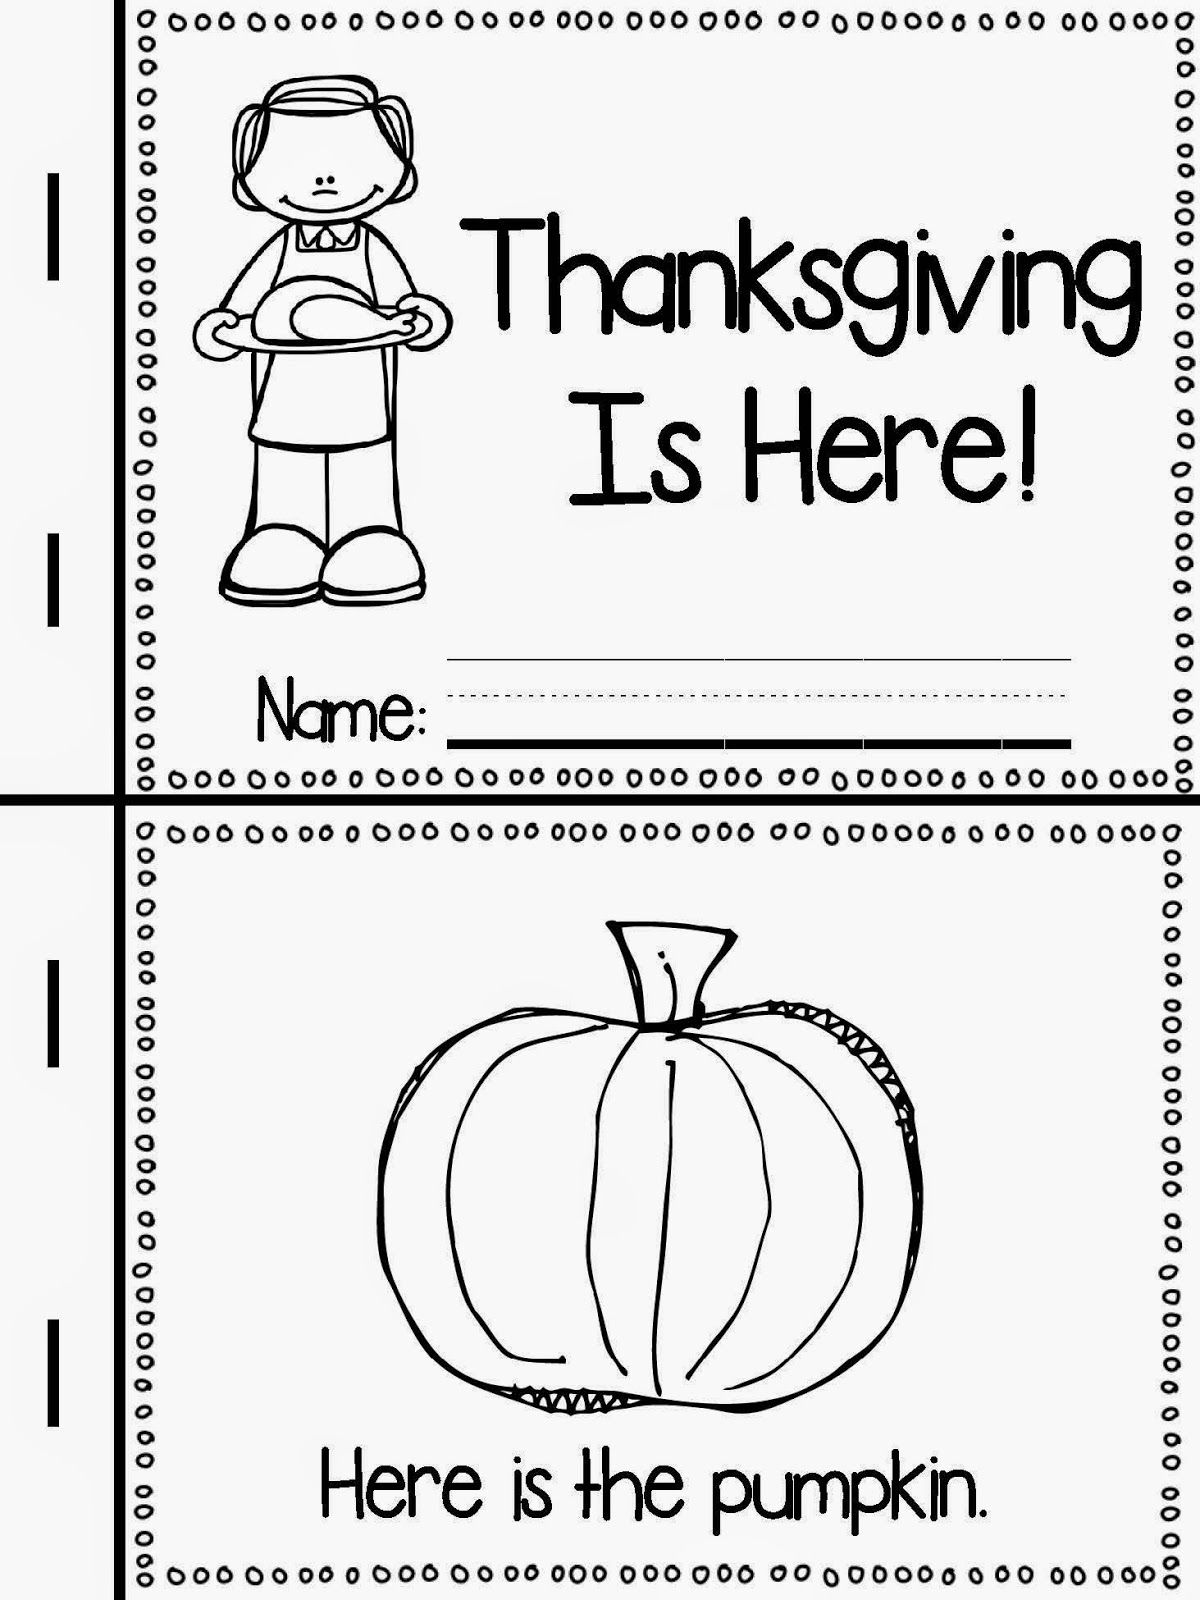 Twas The Week Before Thanksgiving